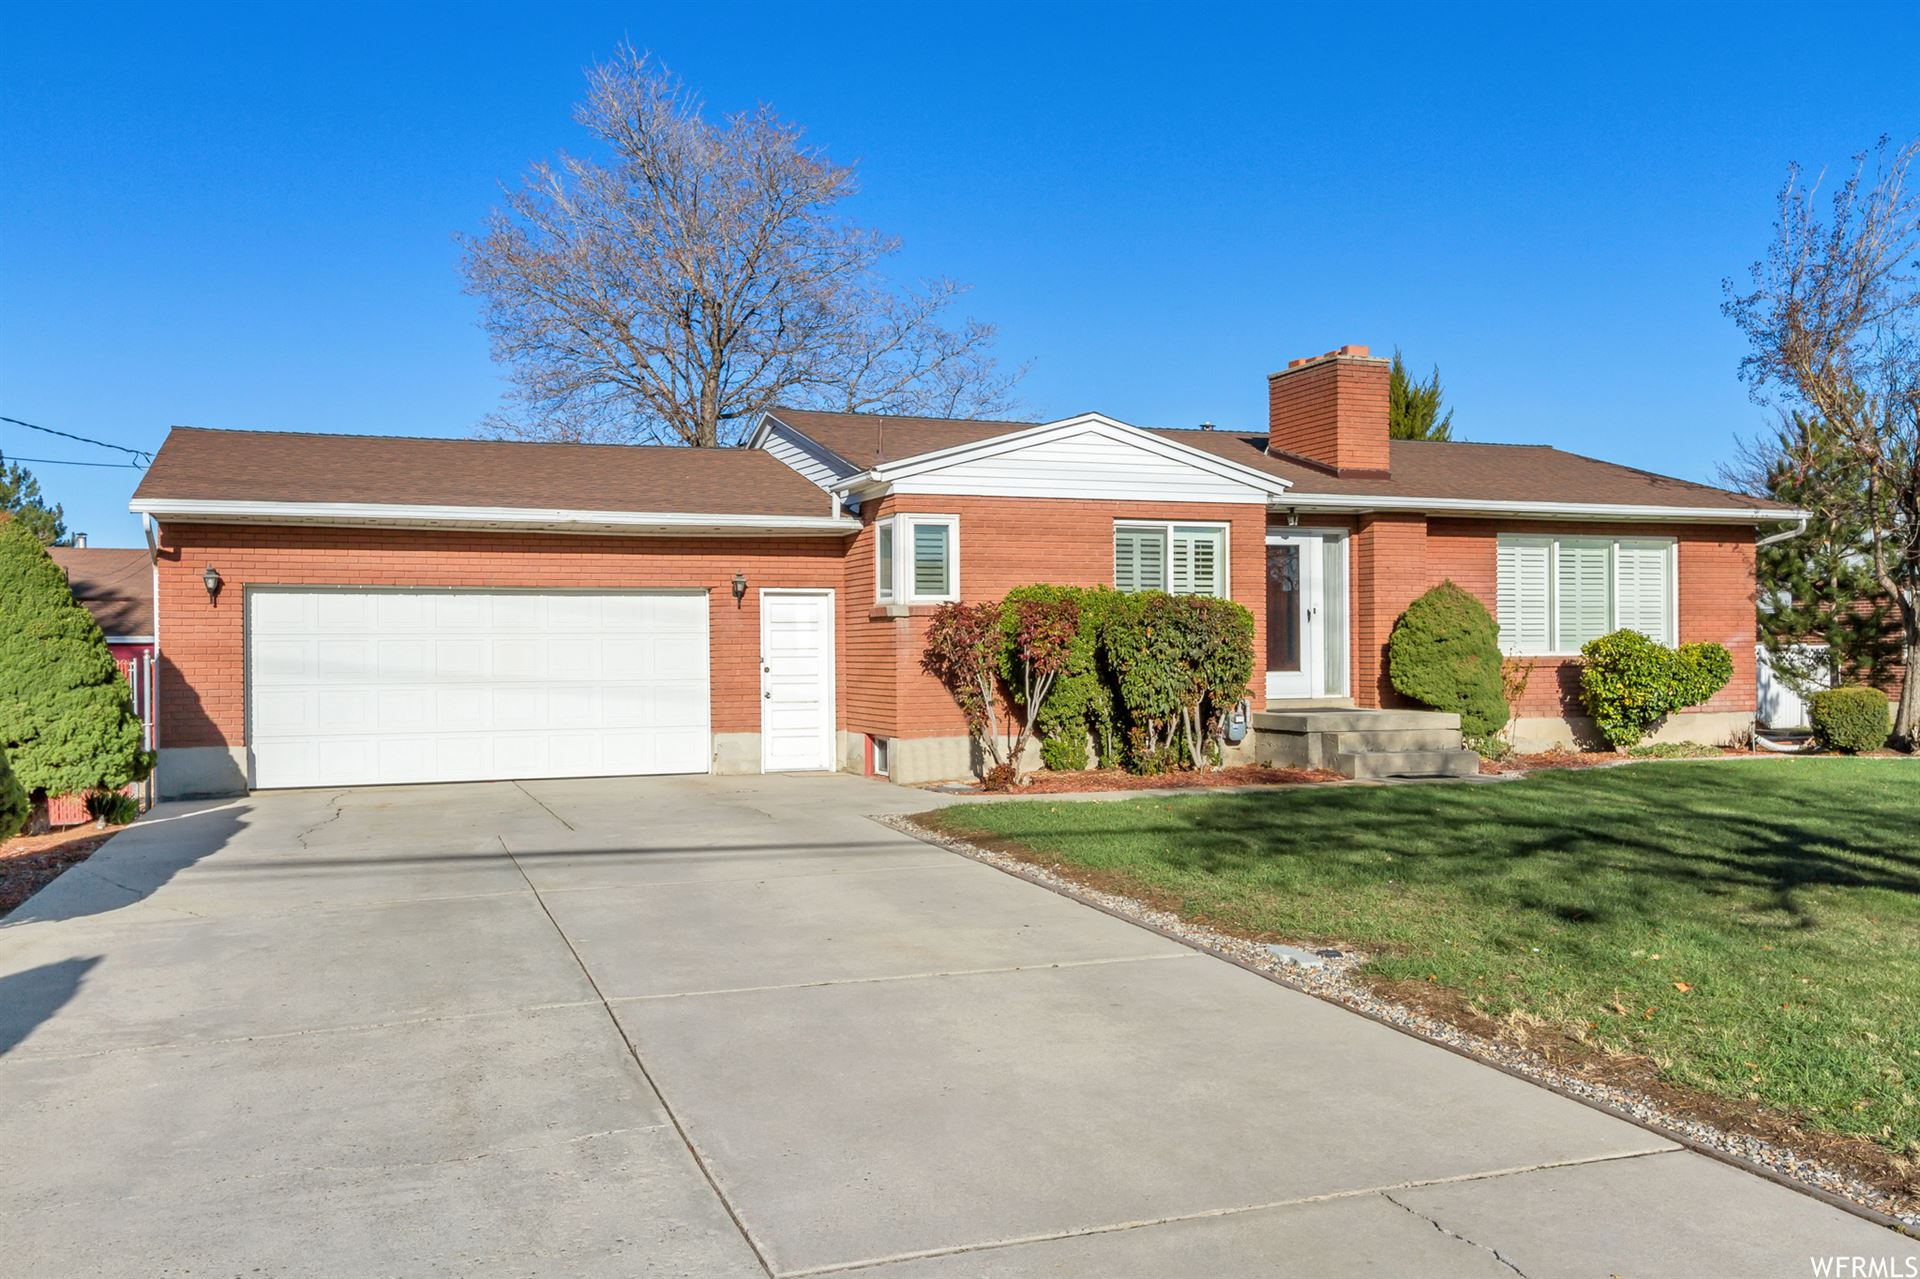 Photo of 5466 S 700 W, Murray, UT 84123 (MLS # 1731914)